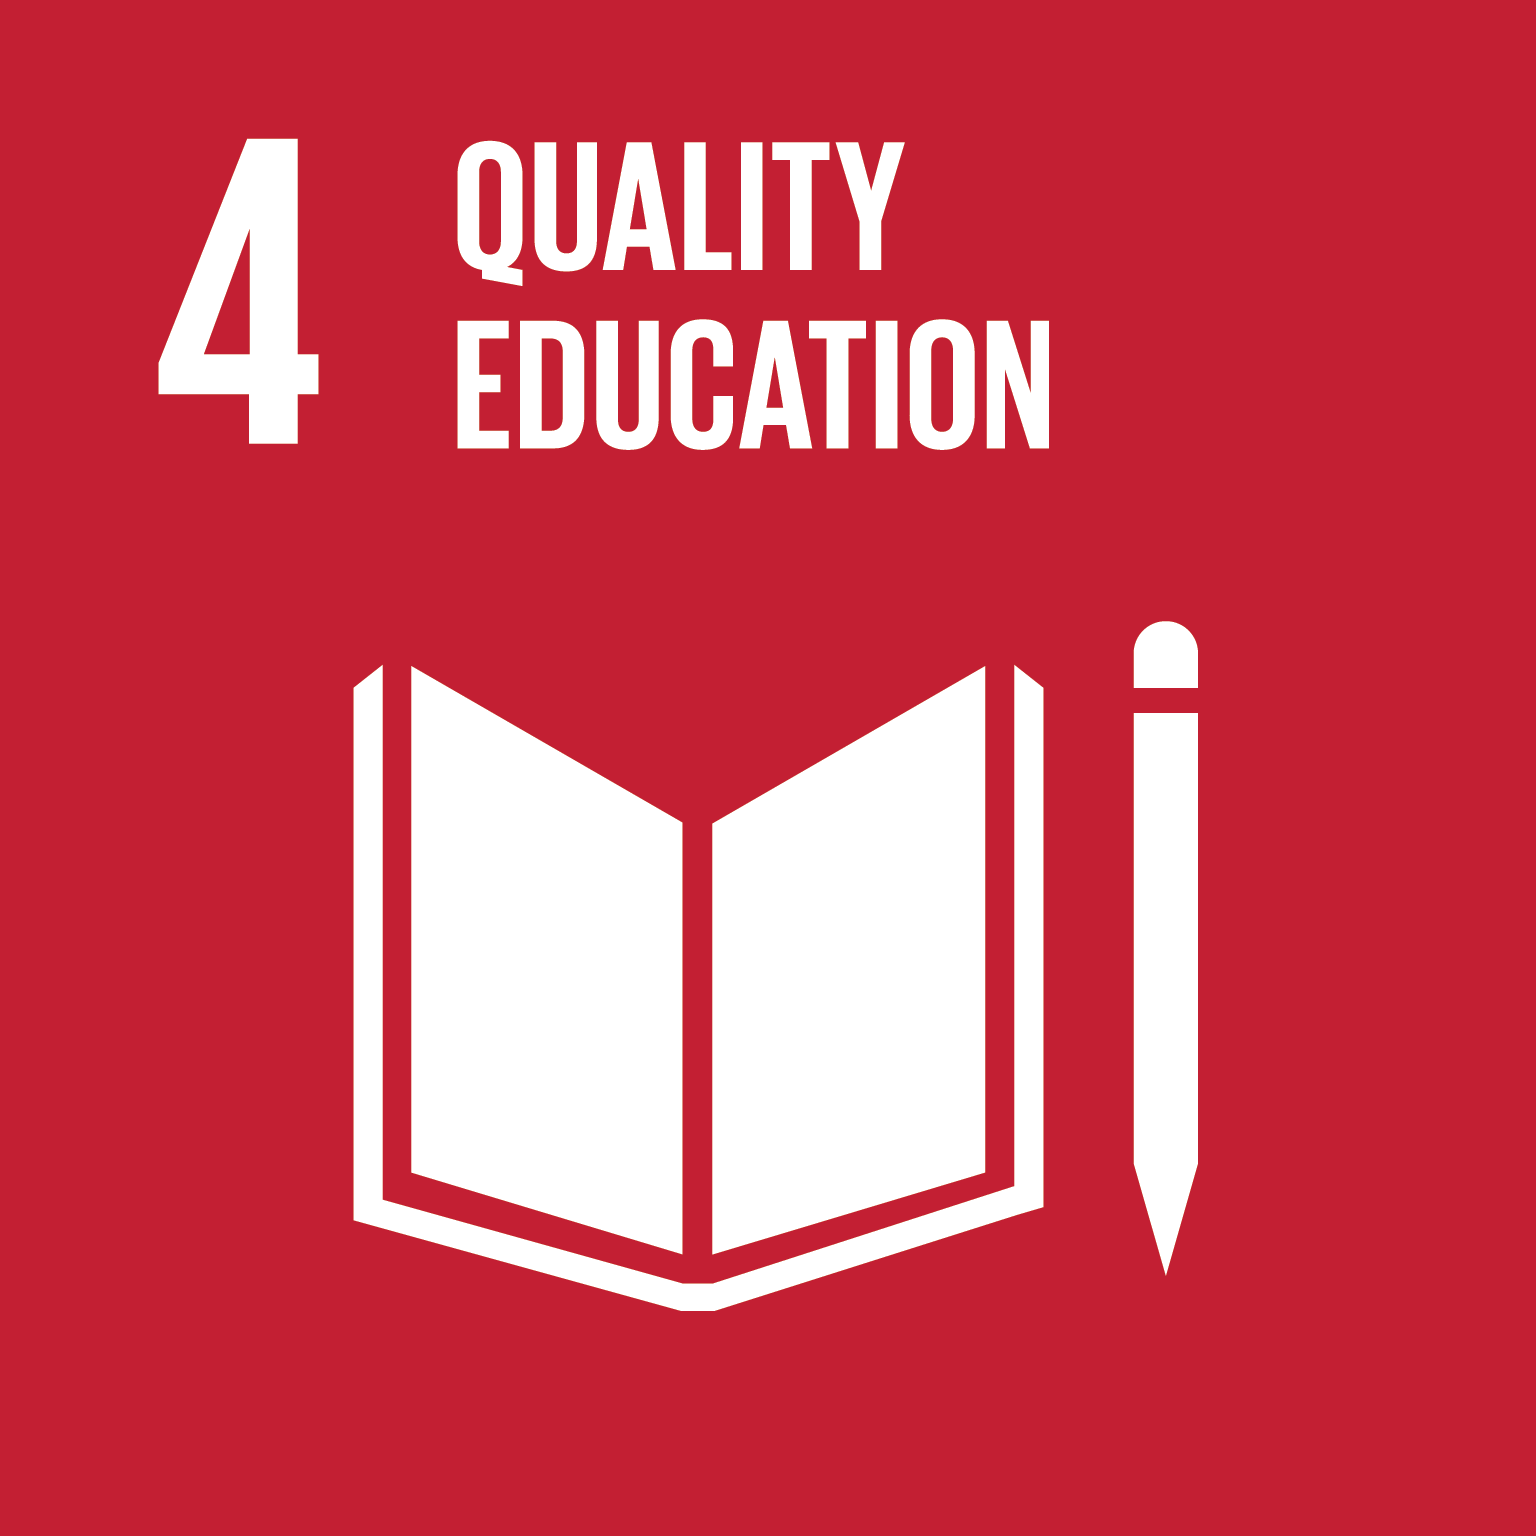 Sustainable Development Goal 4 icon